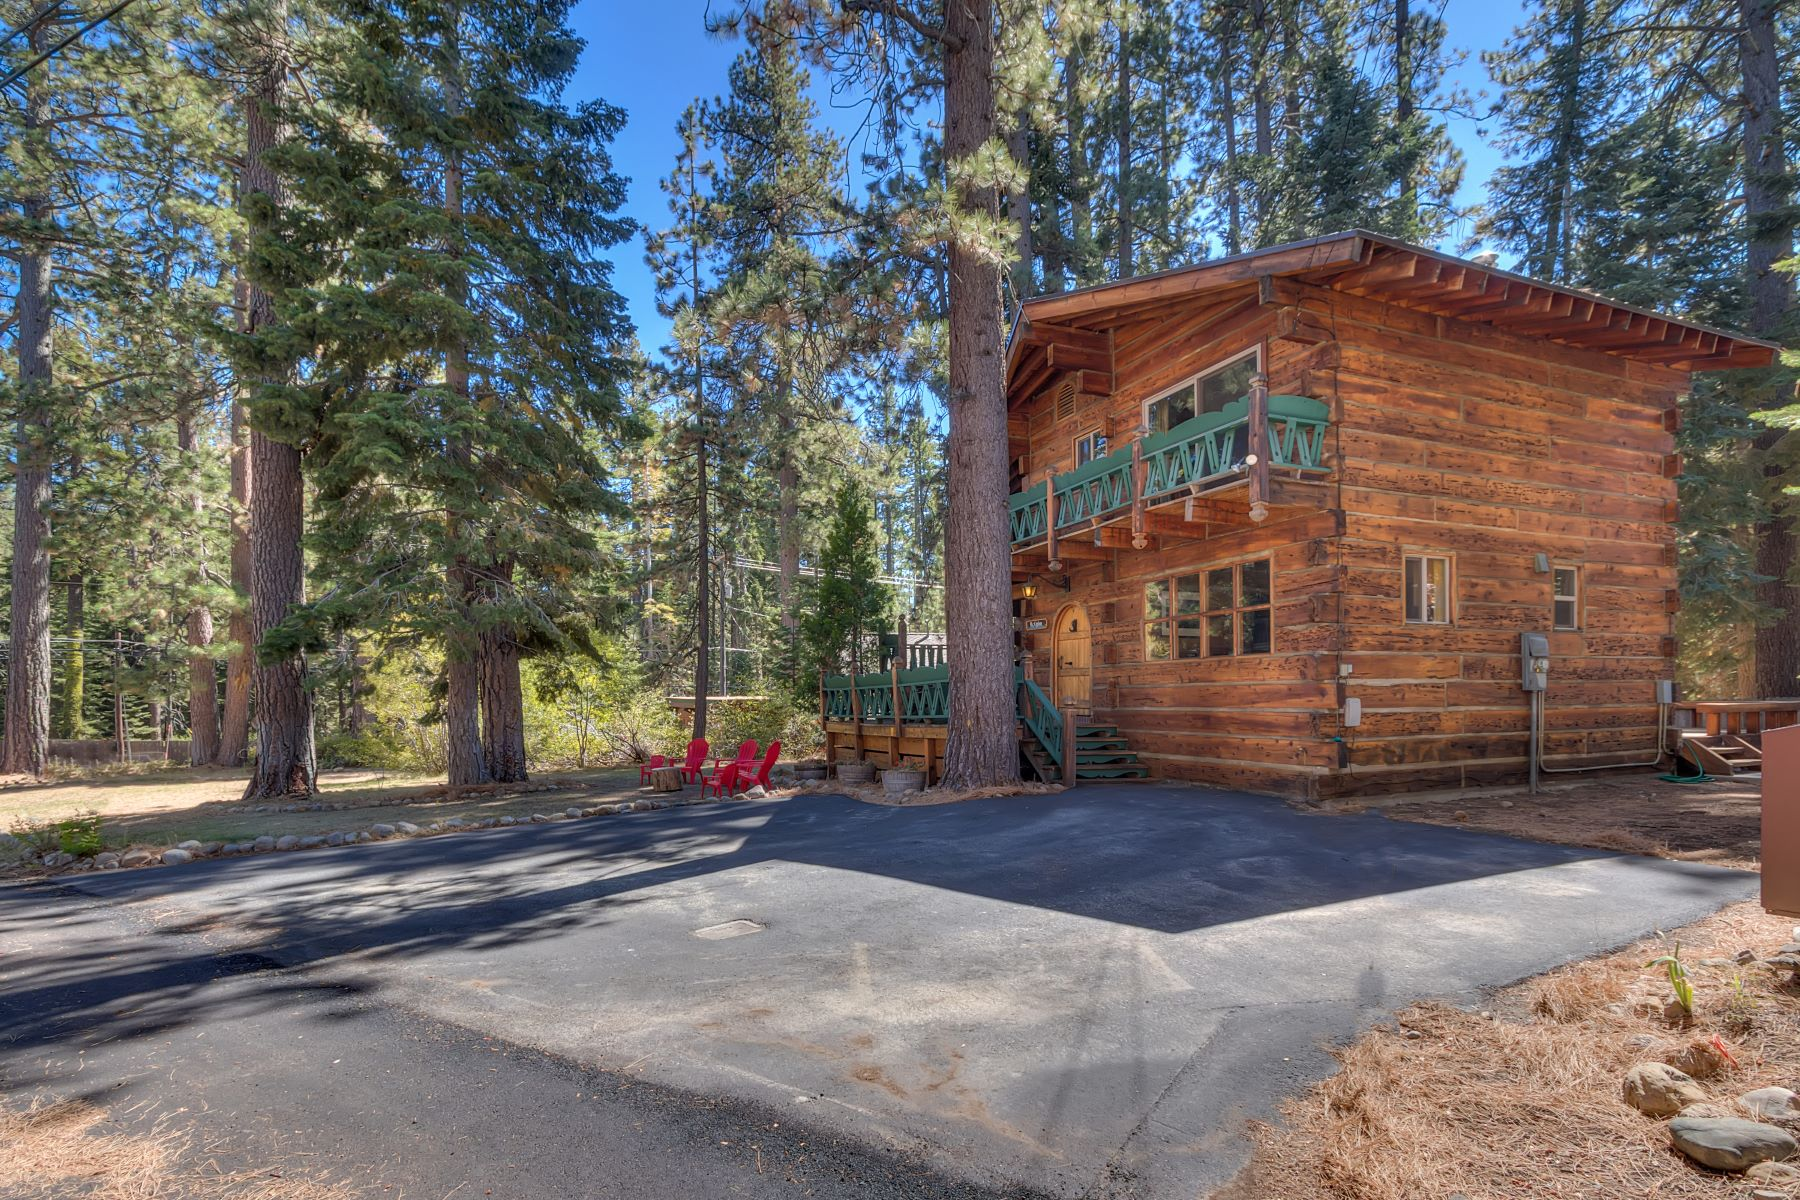 Additional photo for property listing at 265 Tamarack Lane, Tahoe City, CA 265 Tamarack Lane Tahoe City, California 96145 United States